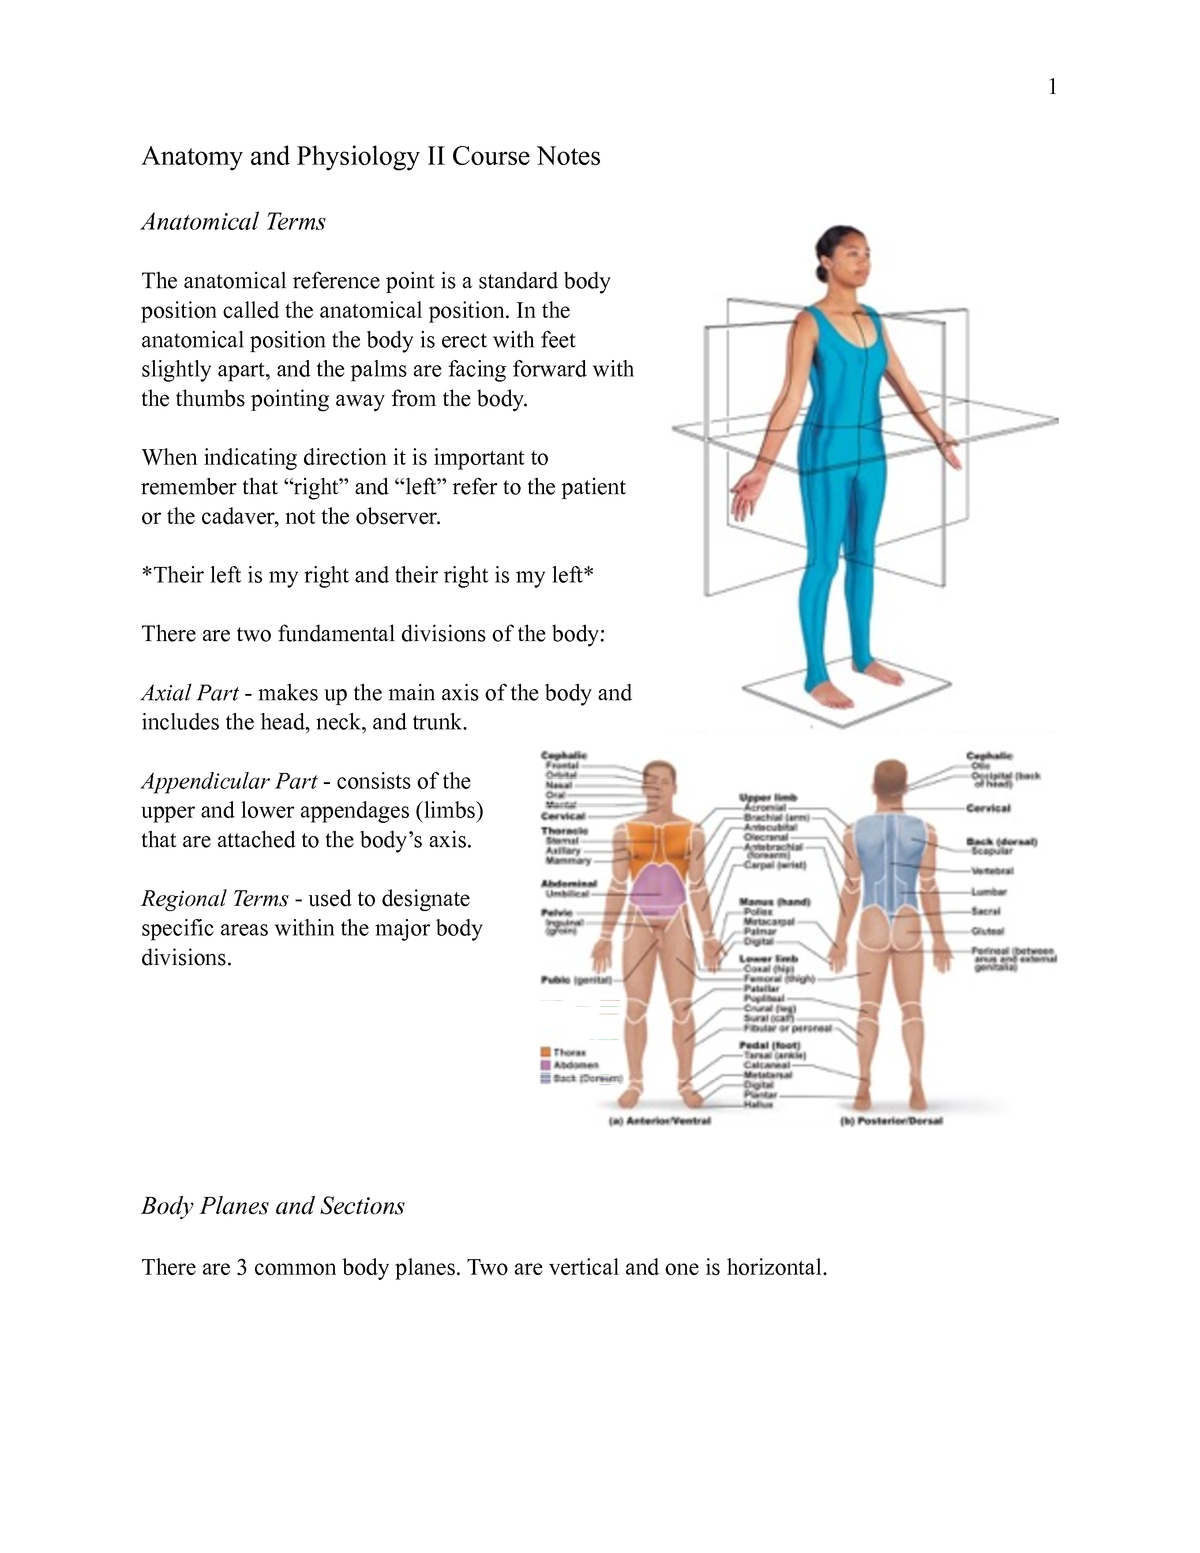 Anatomy and Physiology I Course Notes - ANP1105: Human